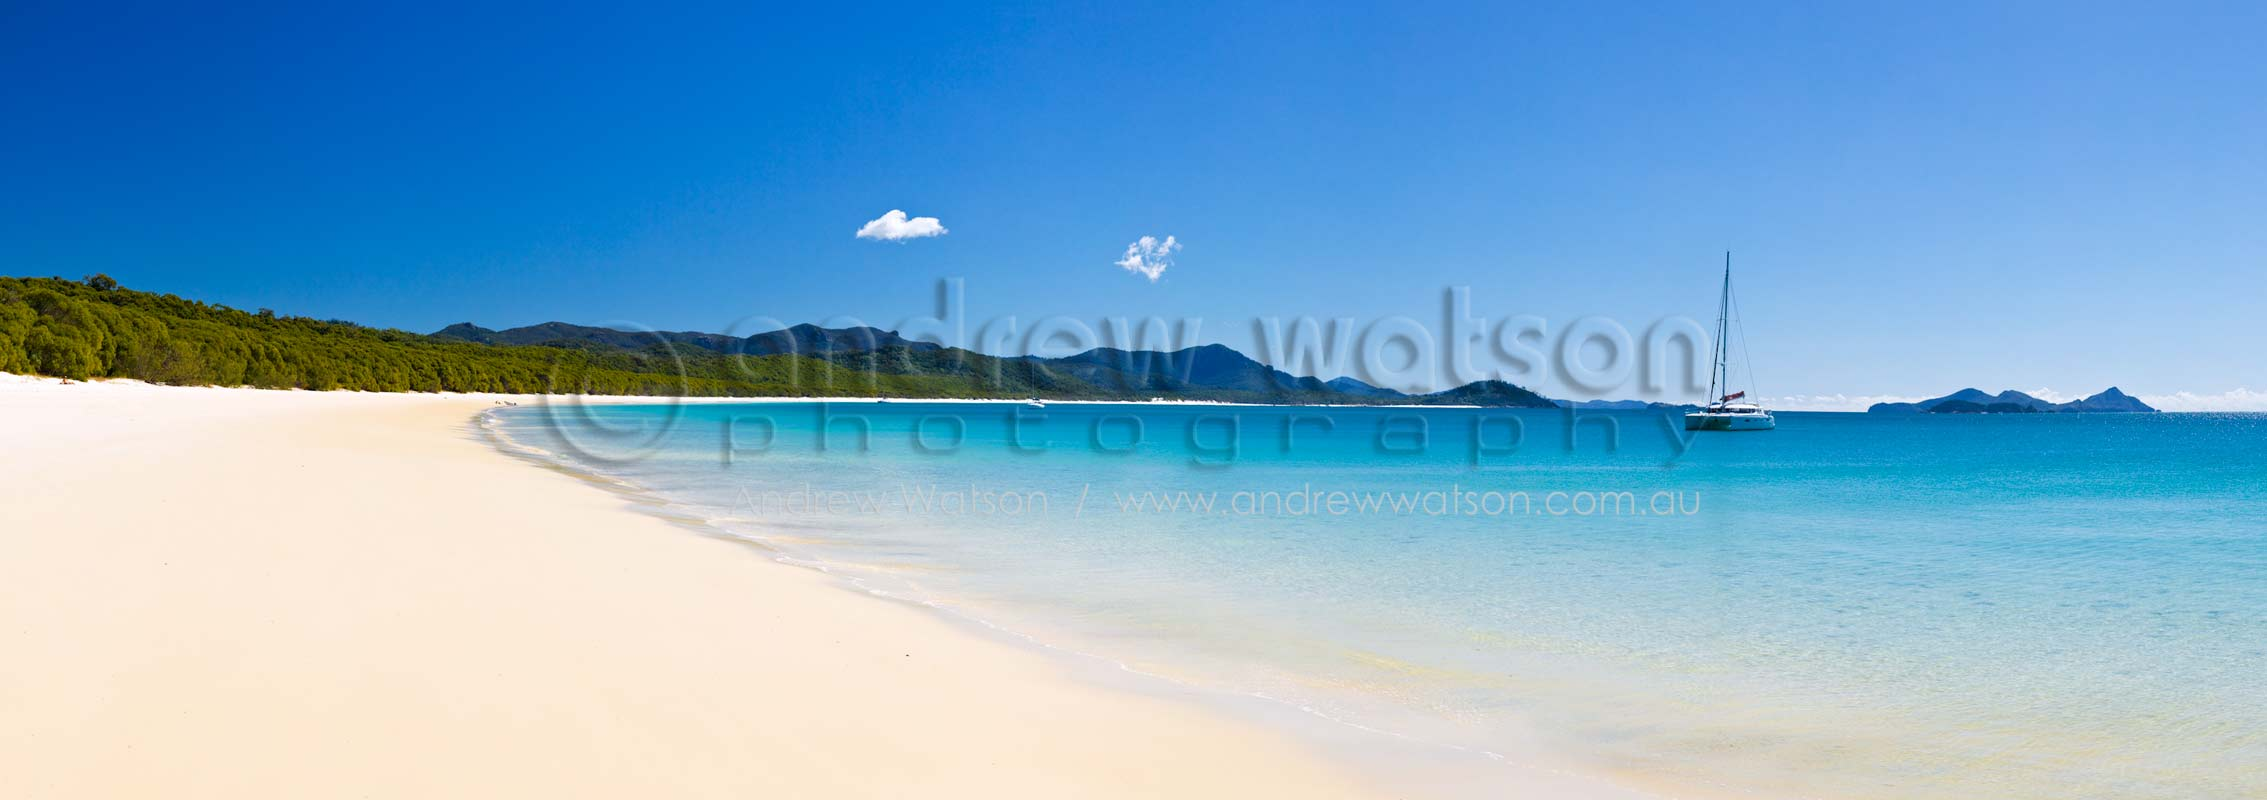 View along Whitehaven BeachWhitsunday Islands, North QueenslandImage available for licensing or as a fine-art print... please enquire